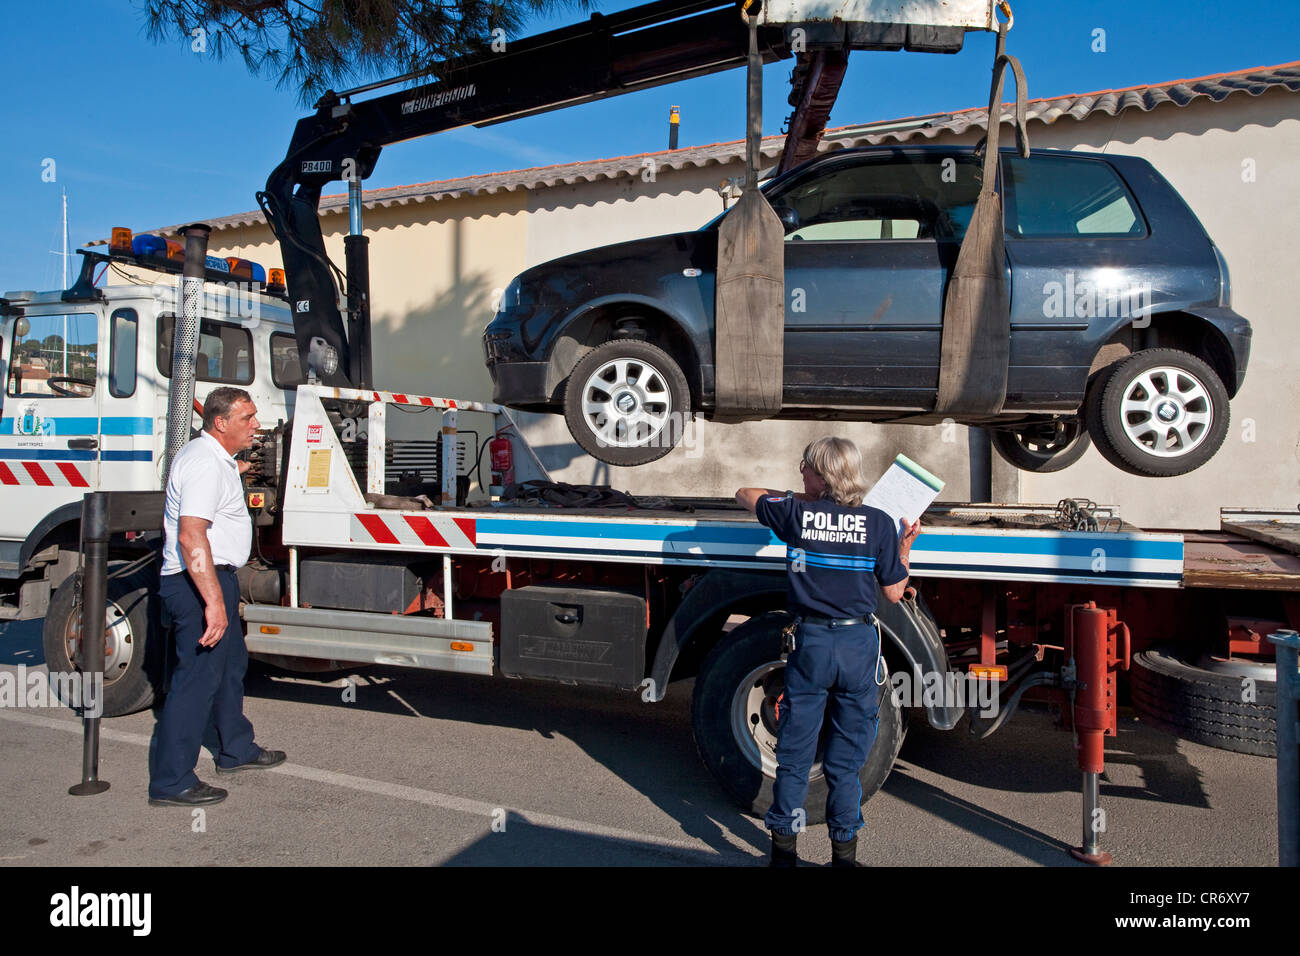 An illegally parked car being towed away, the port of St Tropez, Var, Cote d'Azur, Southern France, France, - Stock Image